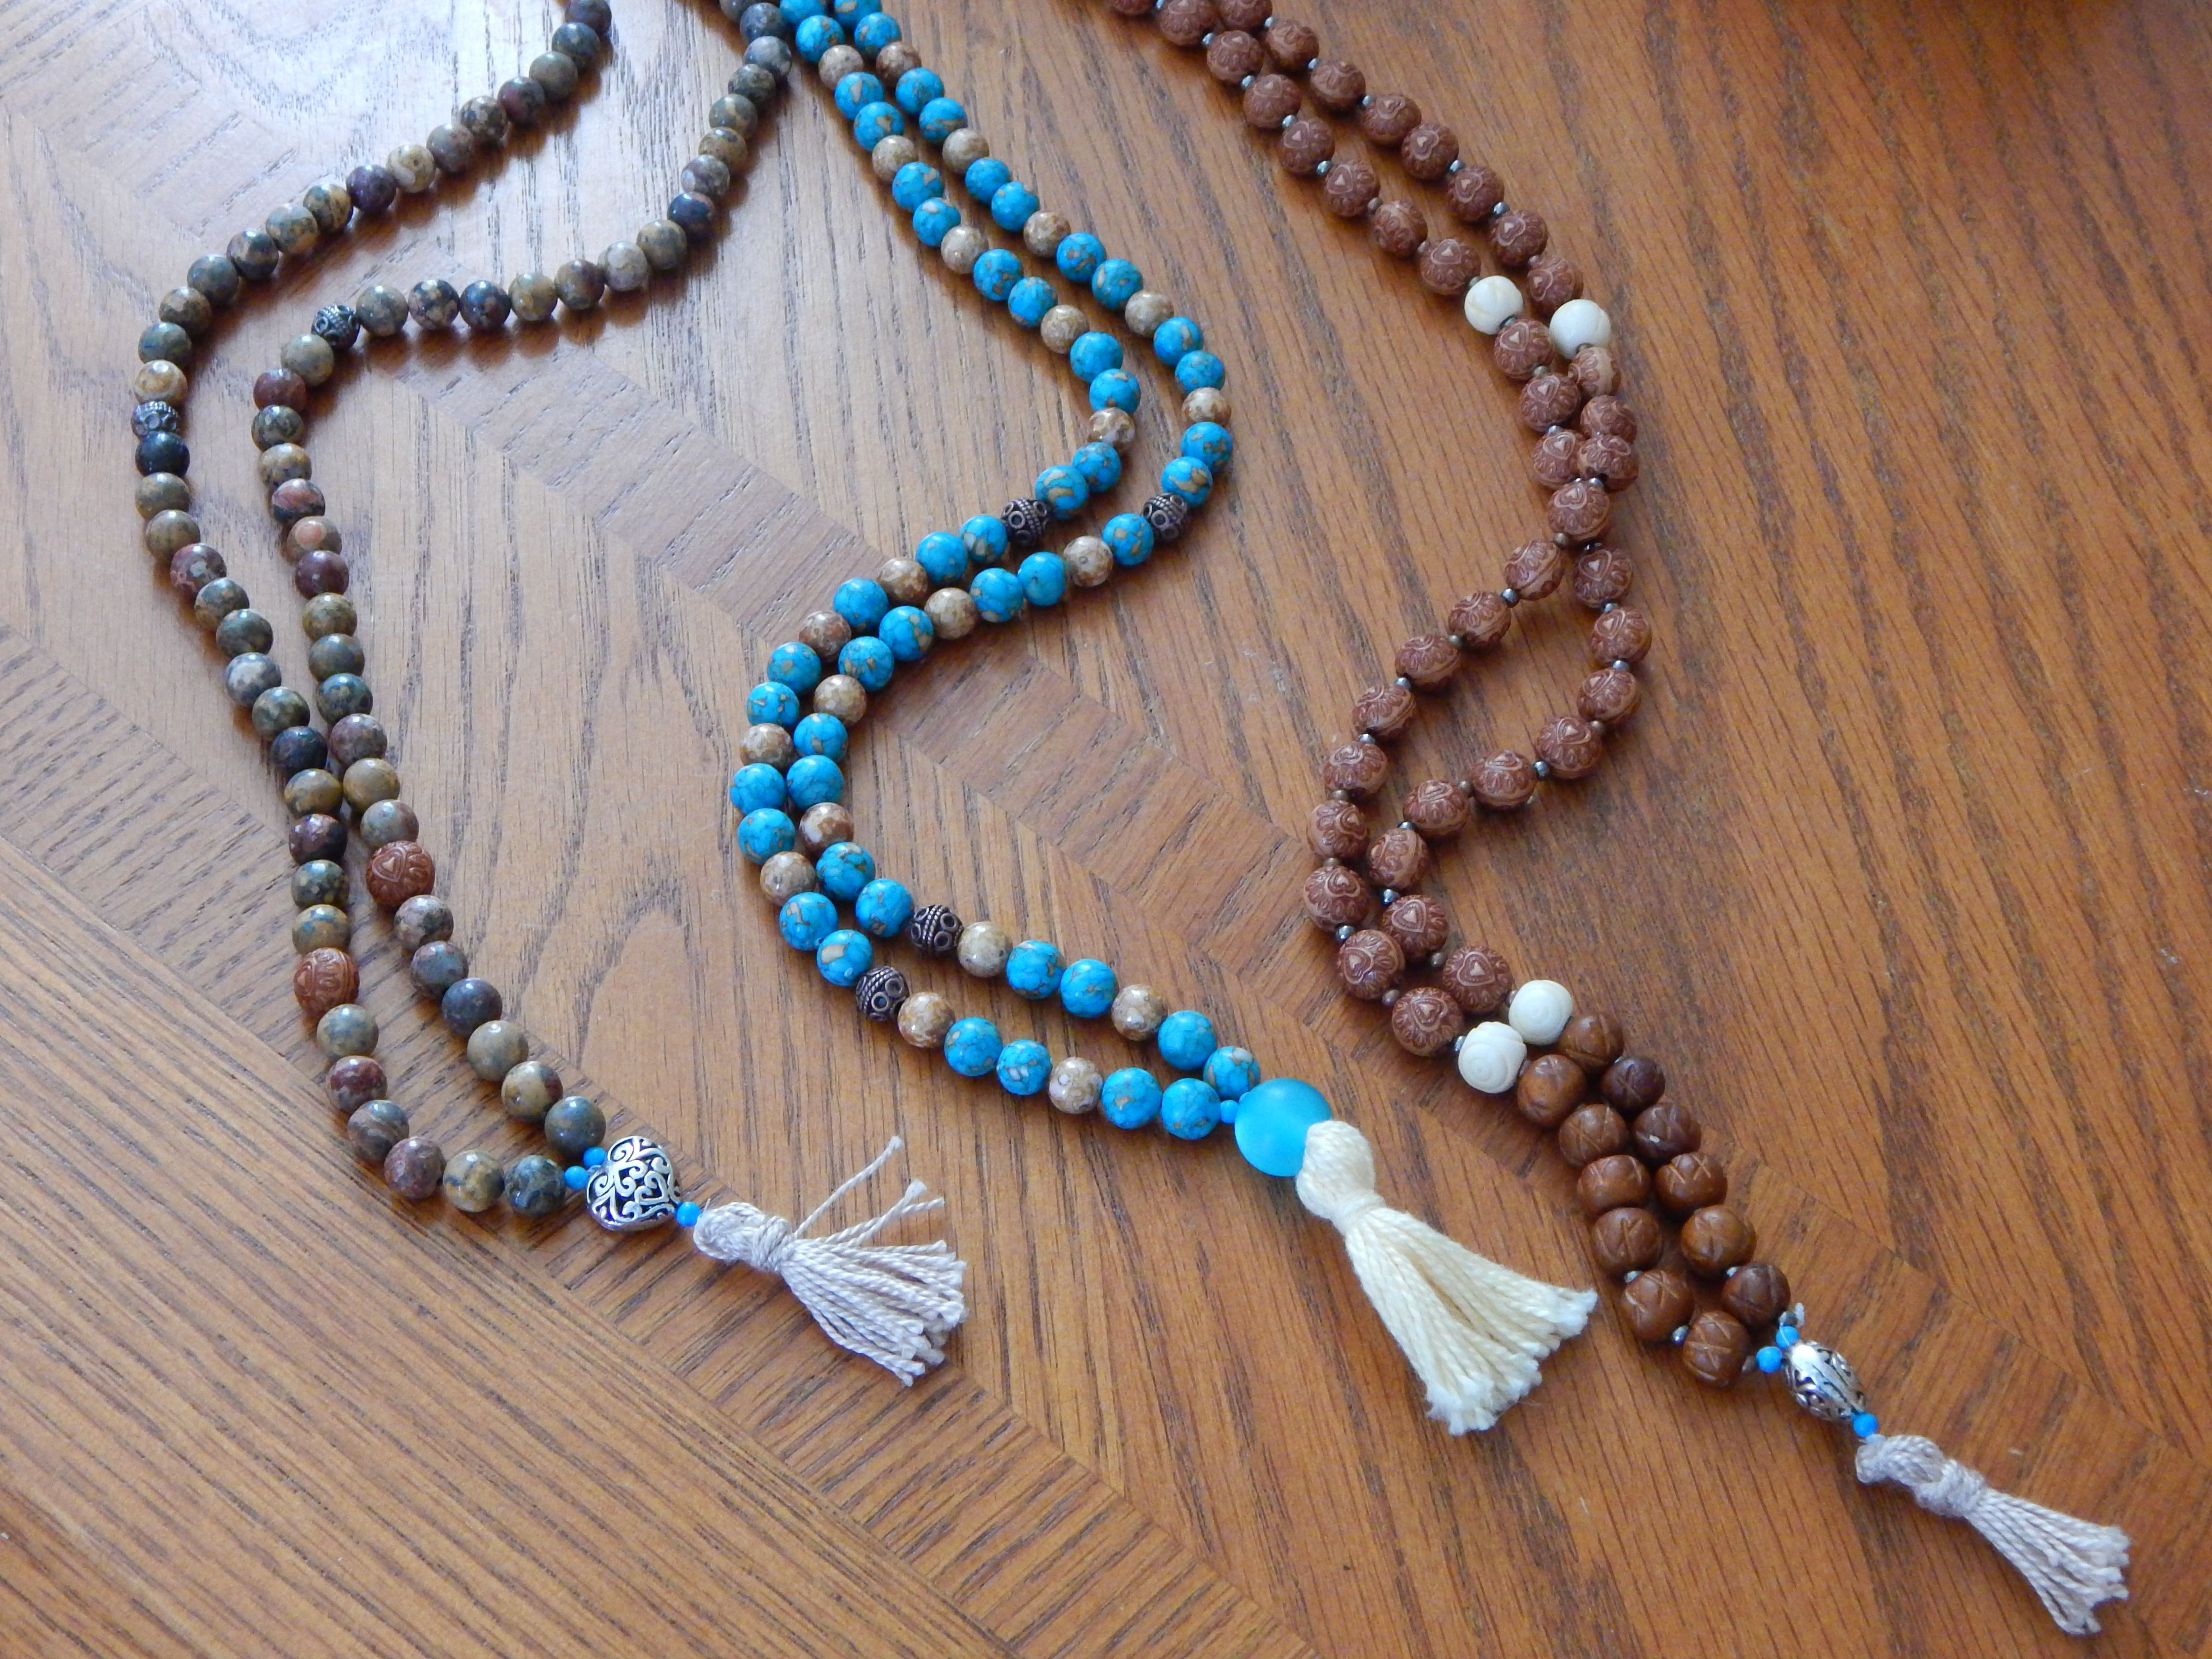 Beads instructions - Make Your Own Mala Beads Simple And Easy Instructions Where You Can Follow Your Own